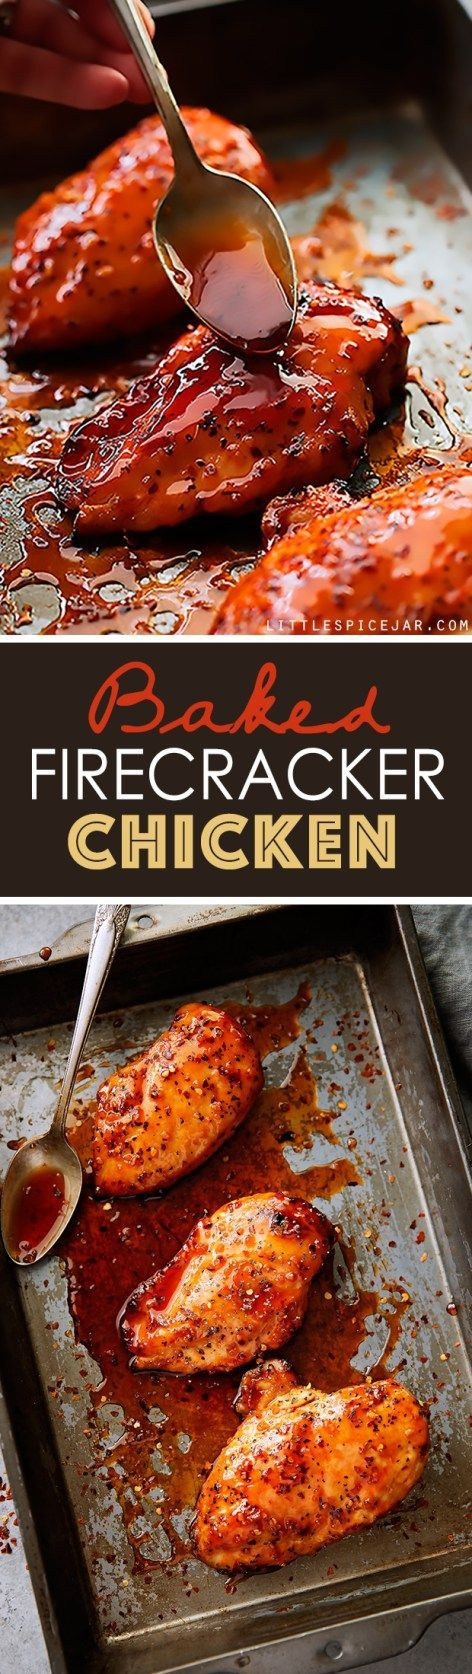 Baked Firecracker Chicken - A quick and easy weeknight dinner recipe! Learn how to make dynamite firecracker sauce. Serve with rice.